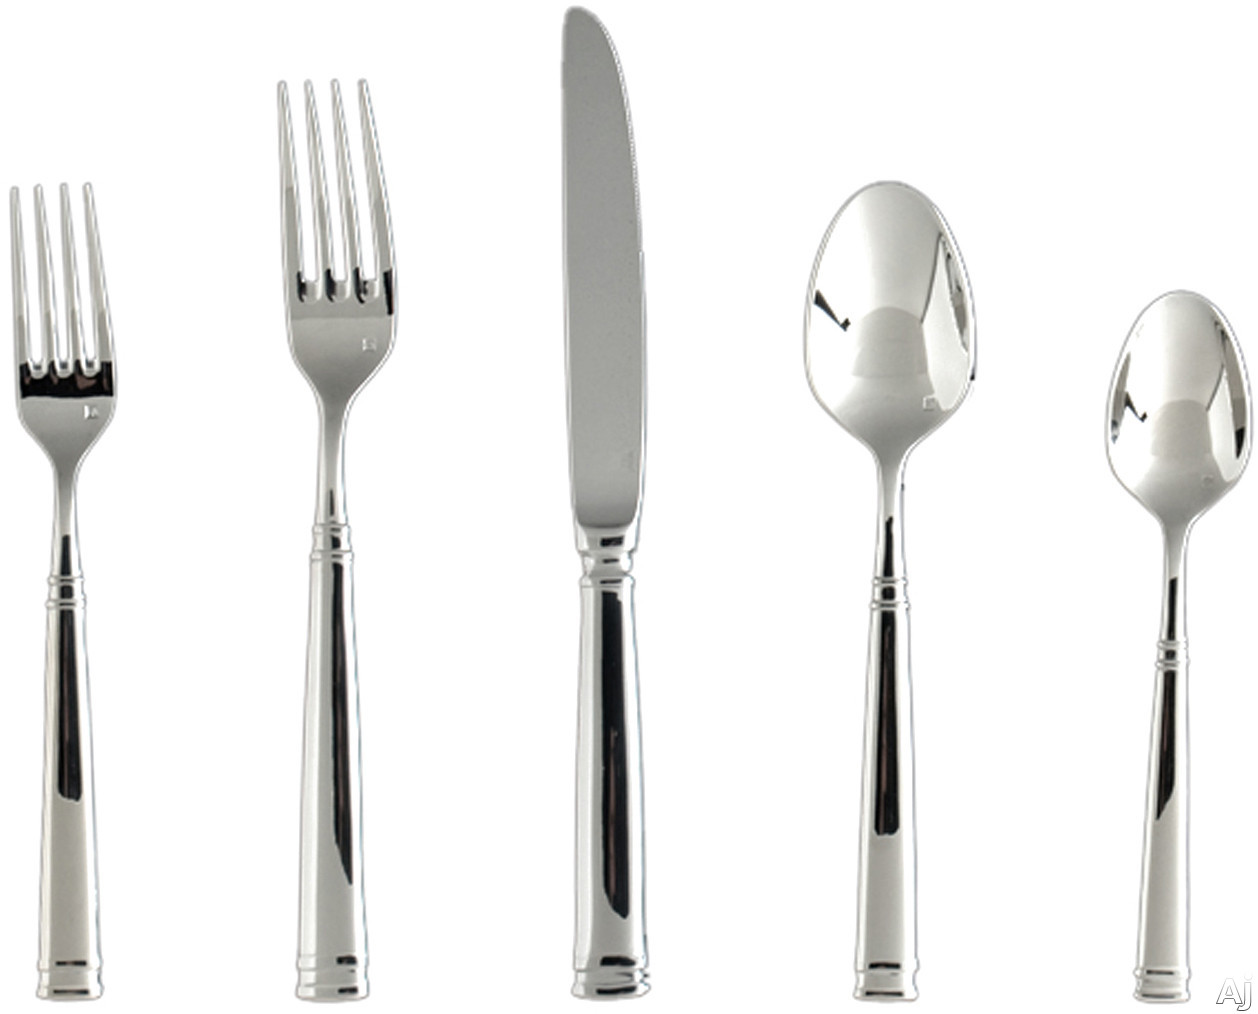 Fortessa 5PPS13020PC Bistro Stainless Steel 20-Piece Flatware Set with Heavy Gauge Stainless Steel and Balanced Design